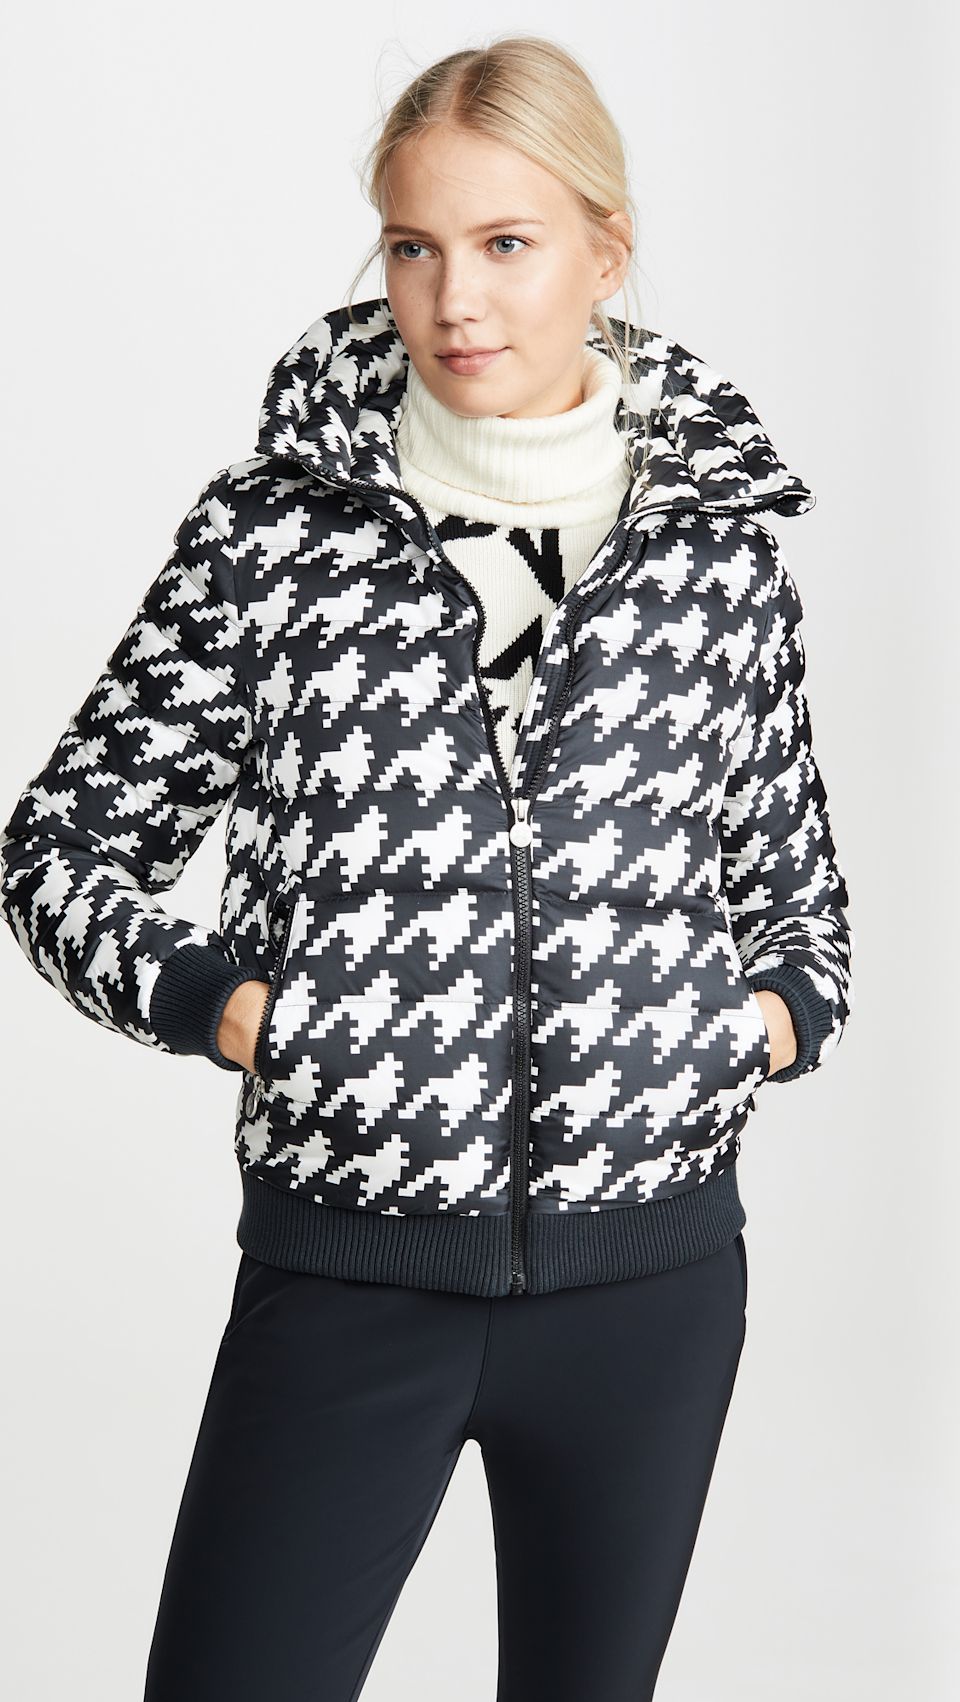 "<h2>Printed Puffers<br></h2><br>""Despite moving into the colder weather, we're still going outside to run errands and taking walks. Even when you're all bundled up, you want to show personality, and a great way of doing this is showing off a fun puffer coat. For us at Shopbop, the more novel the better this season, whether that's a fun color, an interesting print, or a unique material like faux leather. "" <br><br>- Stephanie Nelson Roberson, General Merchandise Manager at Shopbop <br><br><strong>Perfect Moment</strong> Queenie Jacket, $, available at <a href=""https://go.skimresources.com/?id=30283X879131&url=https%3A%2F%2Fwww.shopbop.com%2Fqueenie-jacket-perfect-moment%2Fvp%2Fv%3D1%2F1598915602.htm%3FfolderID%3D13425%26fm%3Dother-shopbysize-viewall%26os%3Dfalse%26colorId%3D81929%26searchClick%3Dtrue%26searchResultClicked%26ref_%3DSB_PLP_NB_25%26breadcrumb%3DClothing%253EJackets%2520%26%2520Coats%253EDown%2520%26%2520Puffer"" rel=""nofollow noopener"" target=""_blank"" data-ylk=""slk:Shopbop"" class=""link rapid-noclick-resp"">Shopbop</a>"